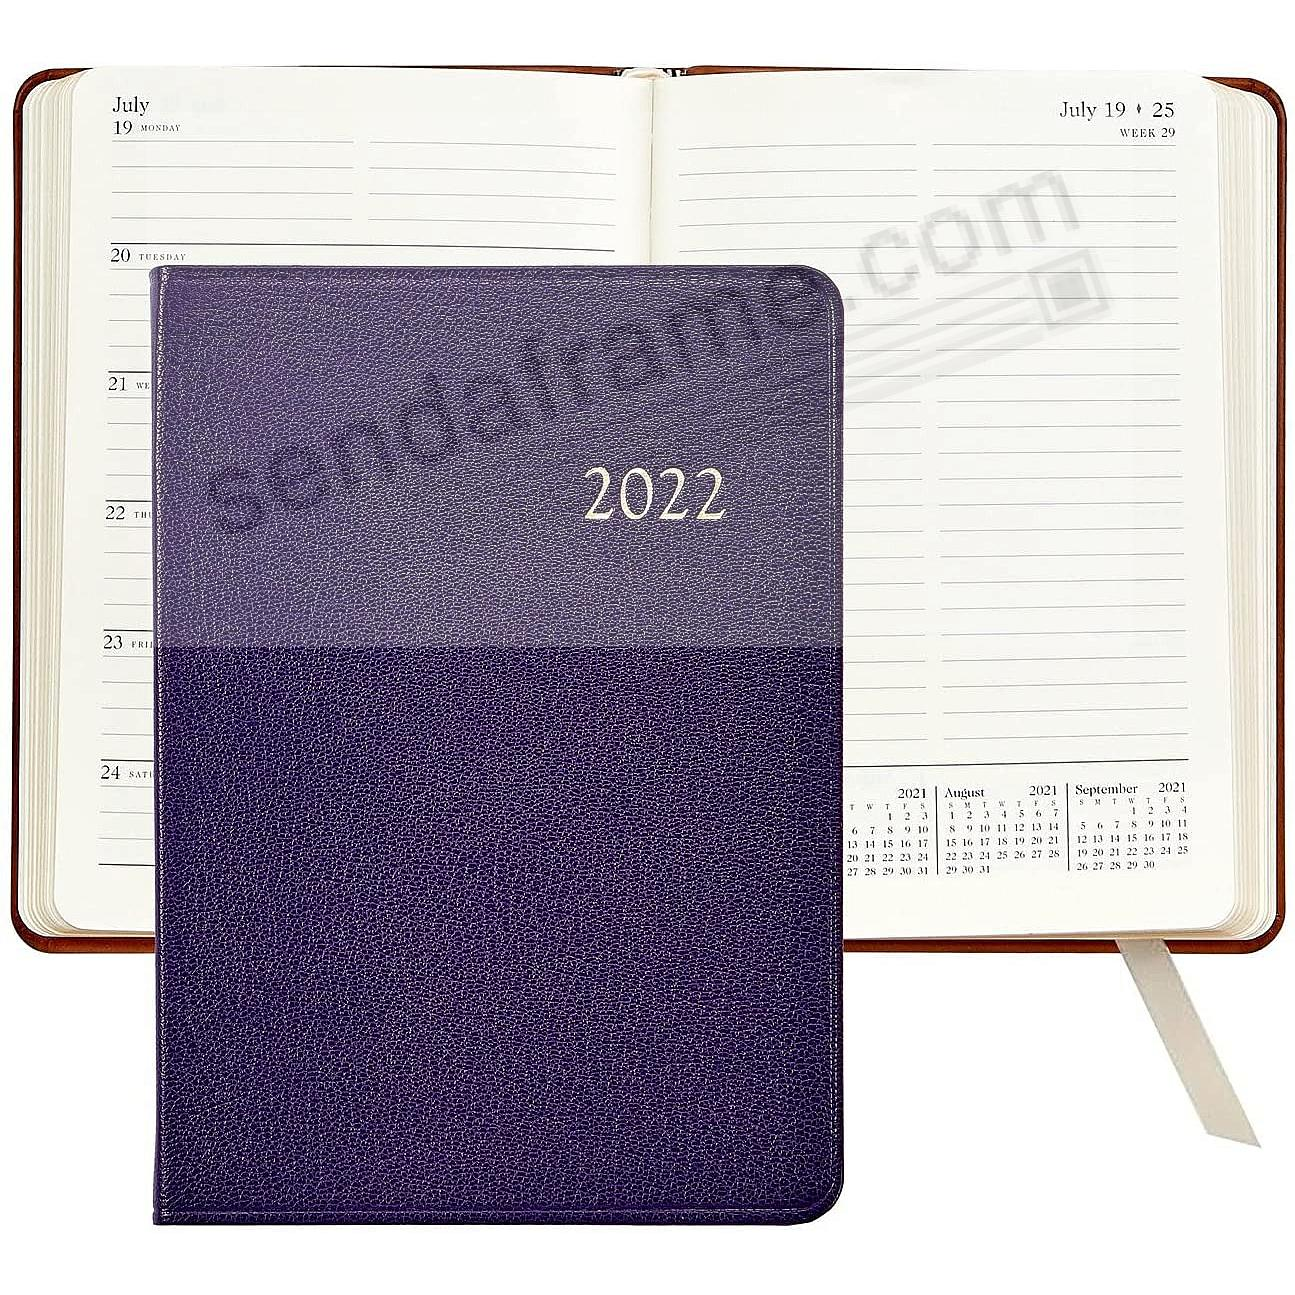 2017 Notebook Planner 7inch Brights-PURPLE Fine Leather by Graphic Image™